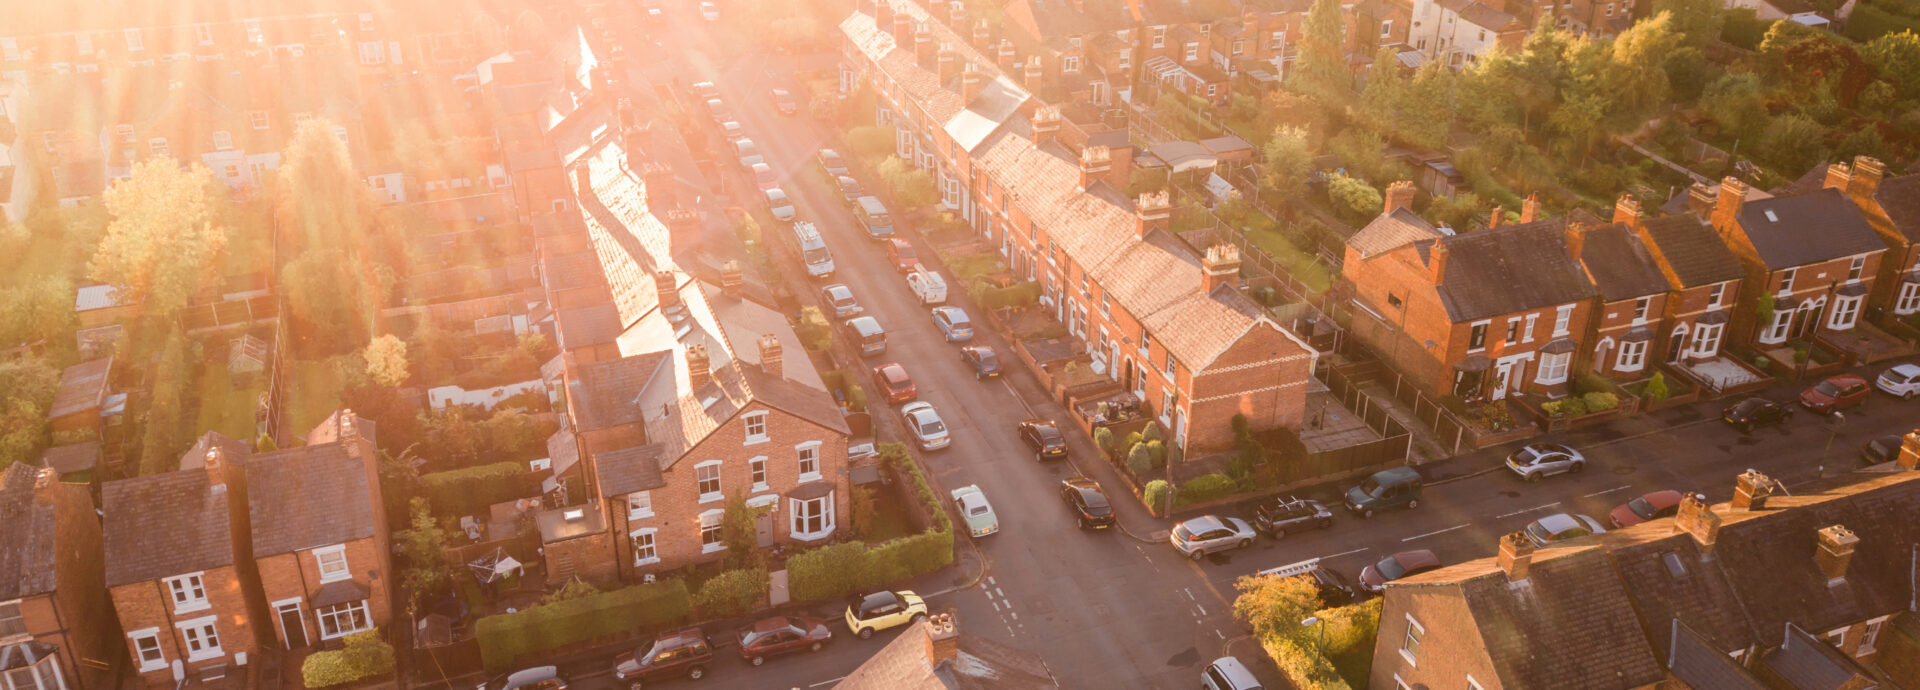 Aerial view of the sun setting over a cross roads in a traditional UK suburb.